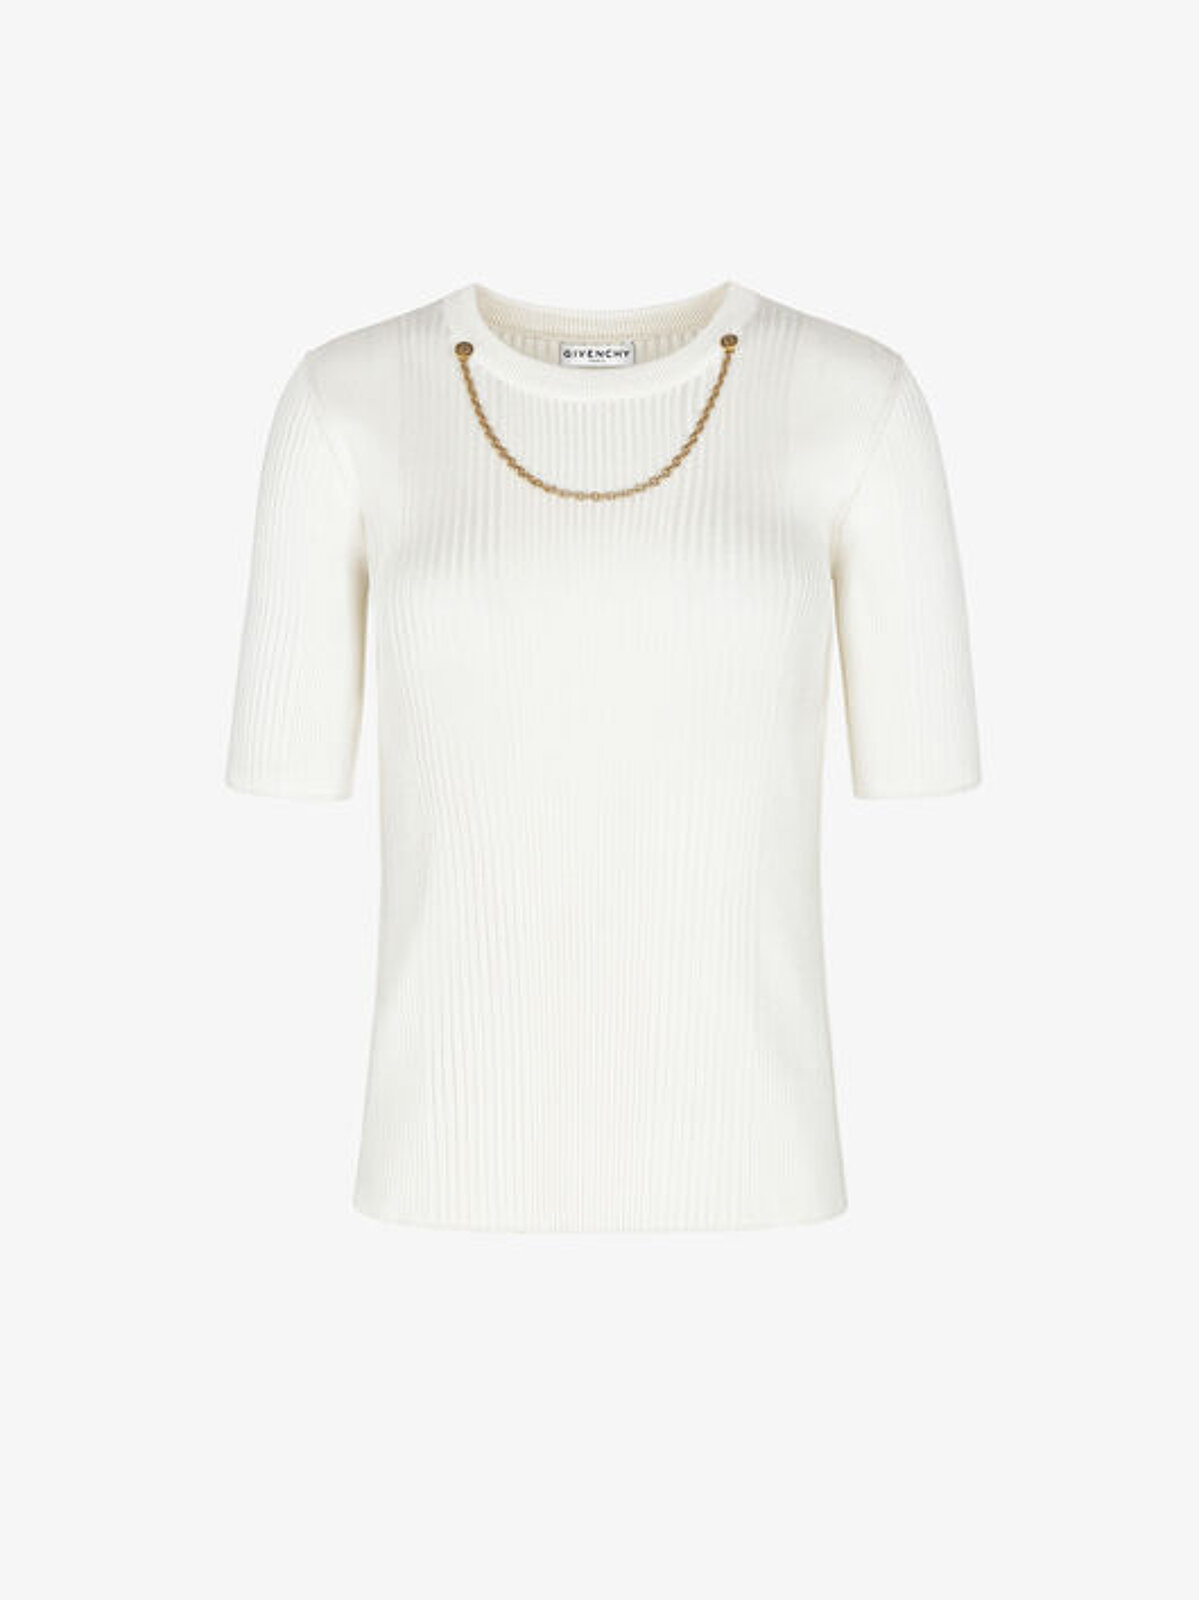 Viscose Pullover With Chain - Givenchy